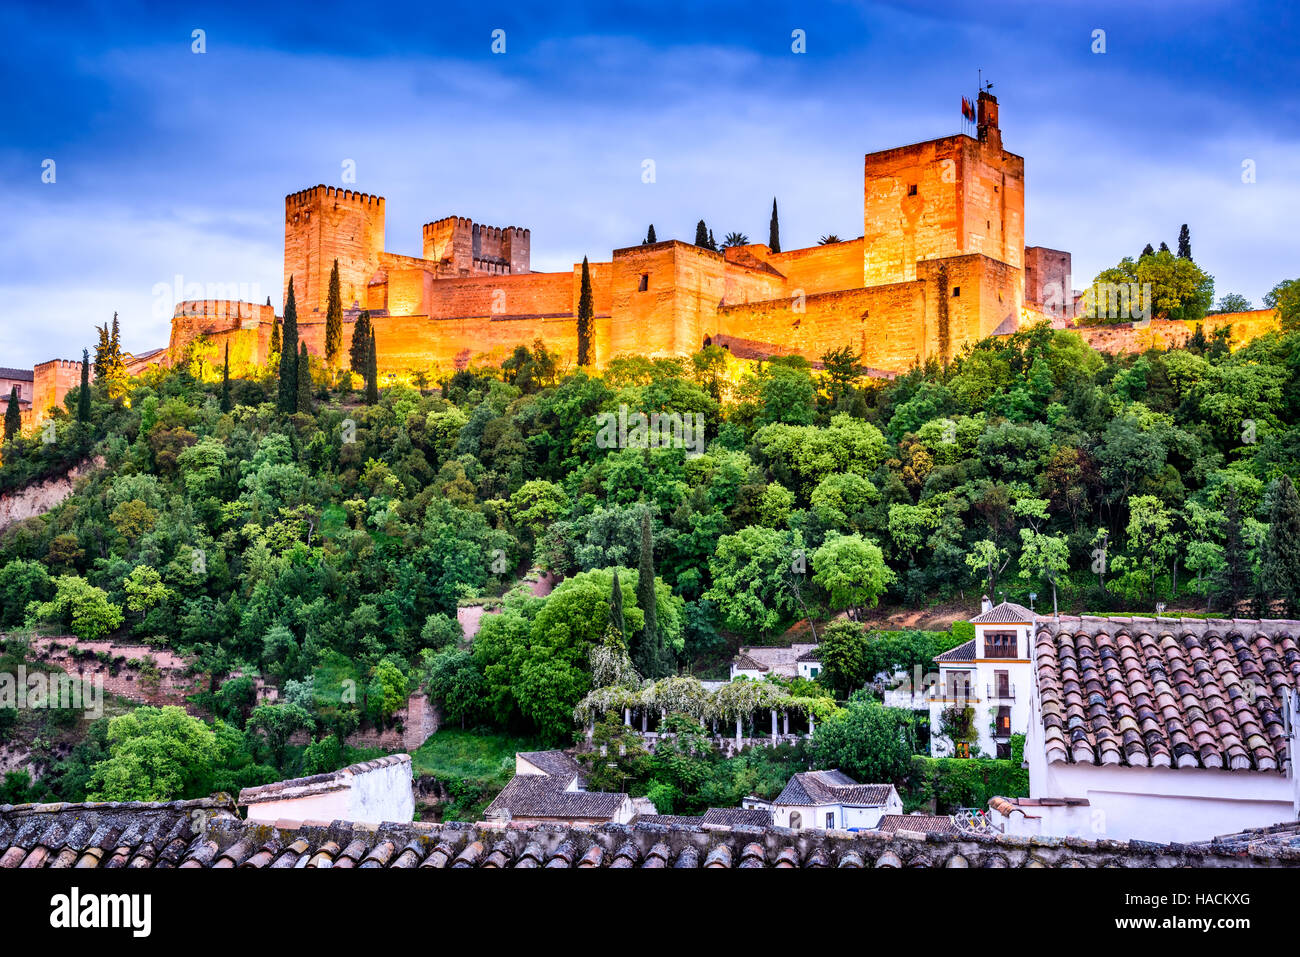 Granada, Spain. Night View of famous Alhambra with Alcazaba, European travel landmark in Andalusia. - Stock Image